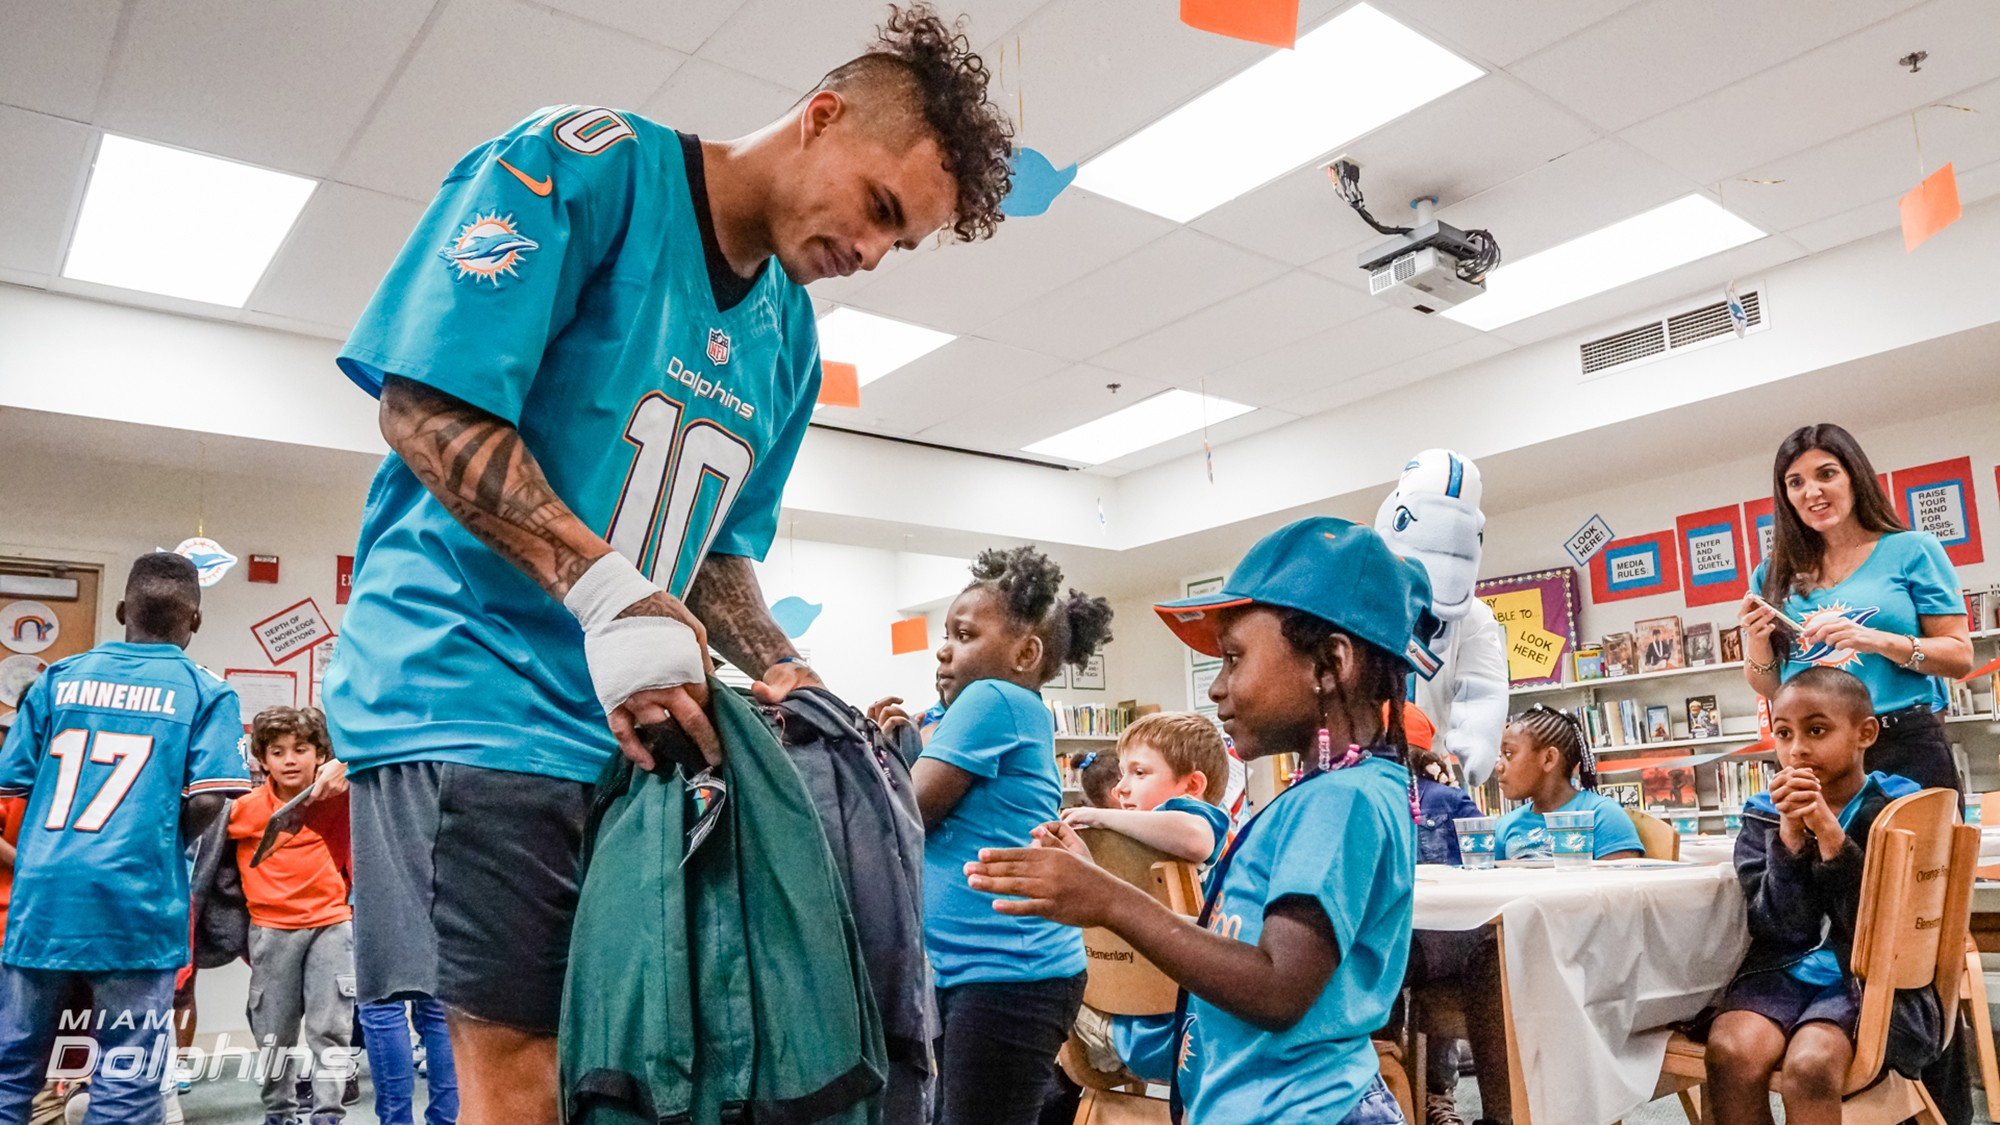 WR Kenny Stills passes out backpacks at Back to School Backpack Event